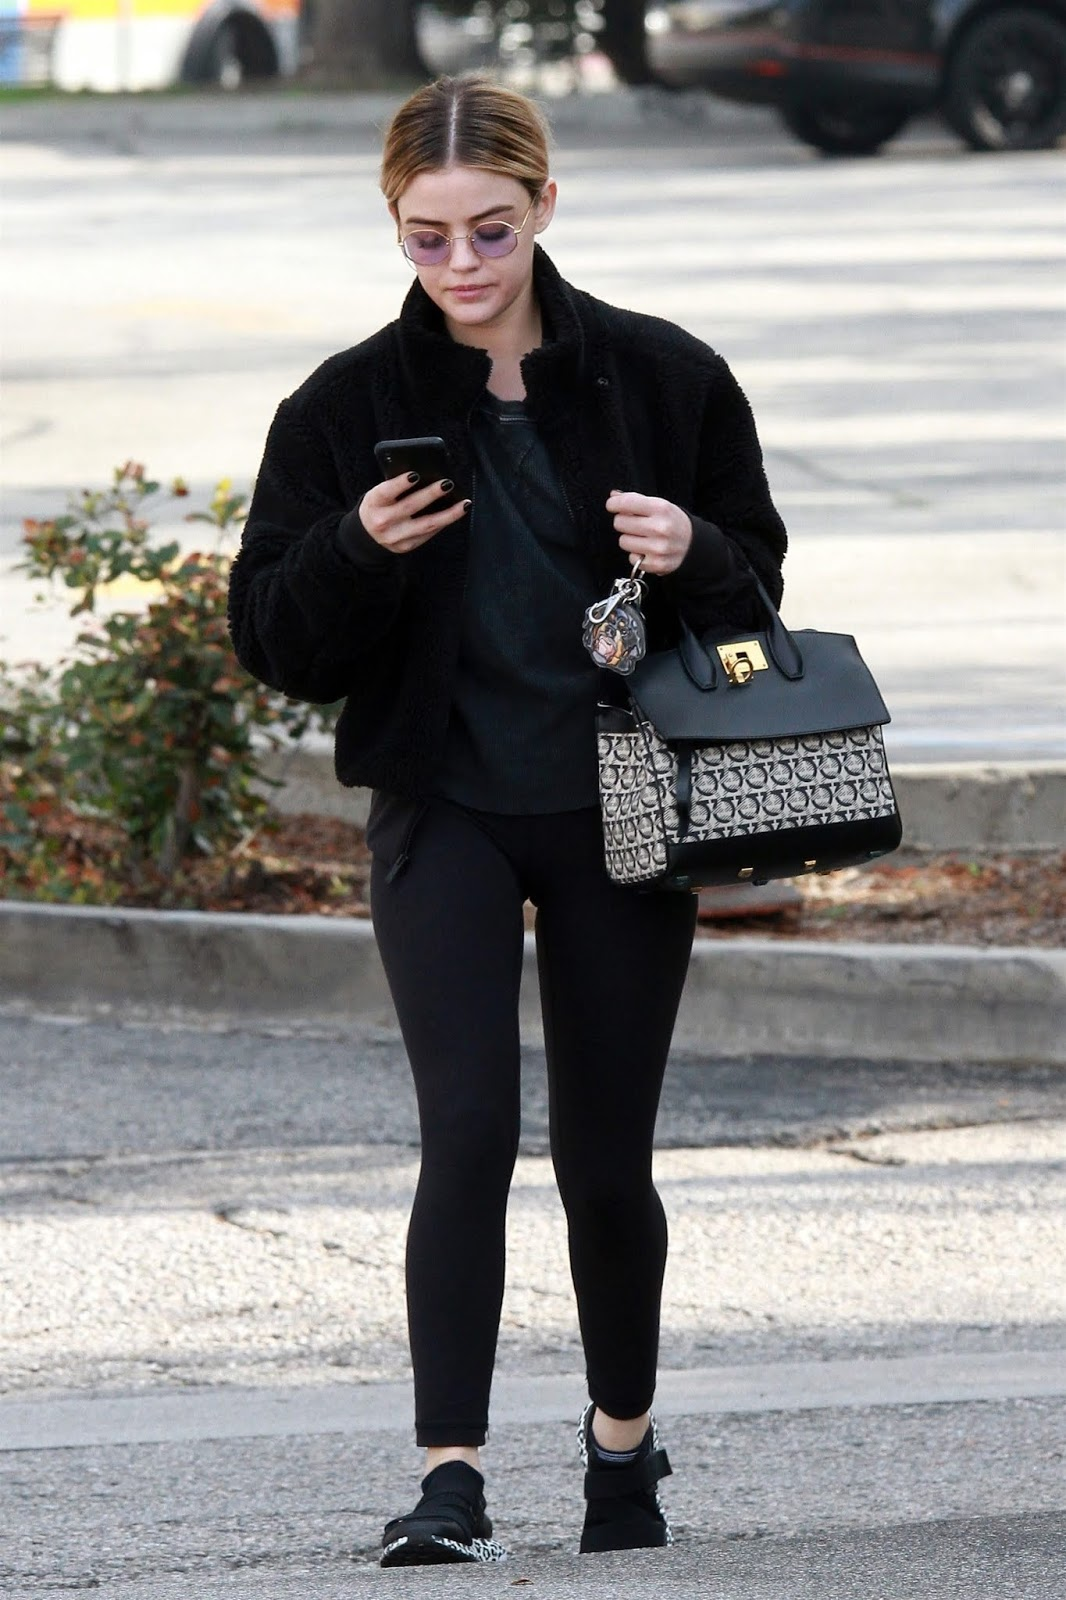 Lucy Hale bundled up in an all black outfit while out running errands in Studio City, CA - 11/01/2019